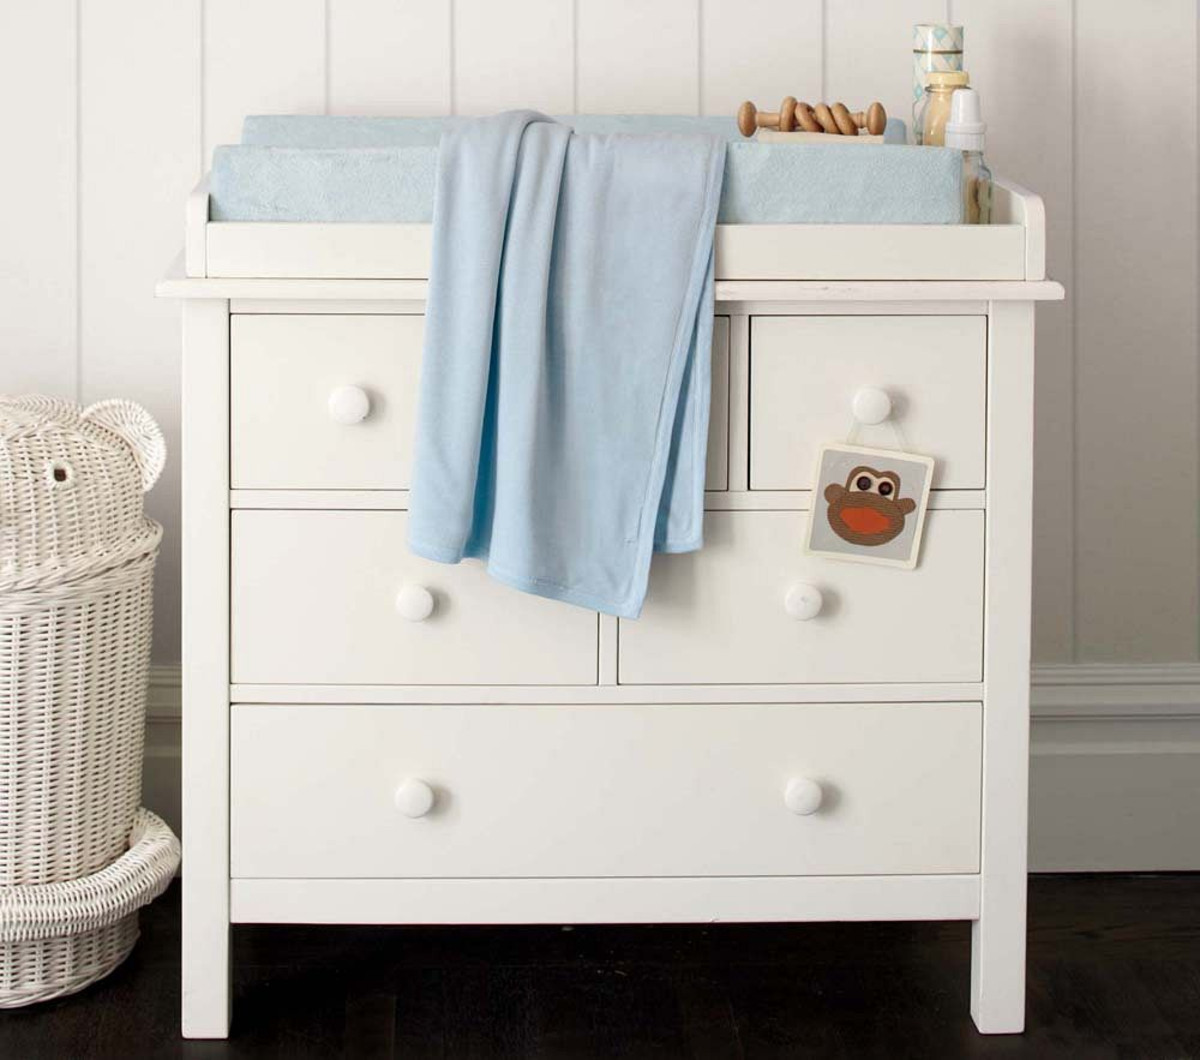 Nice Changing Table Topper for Dresser